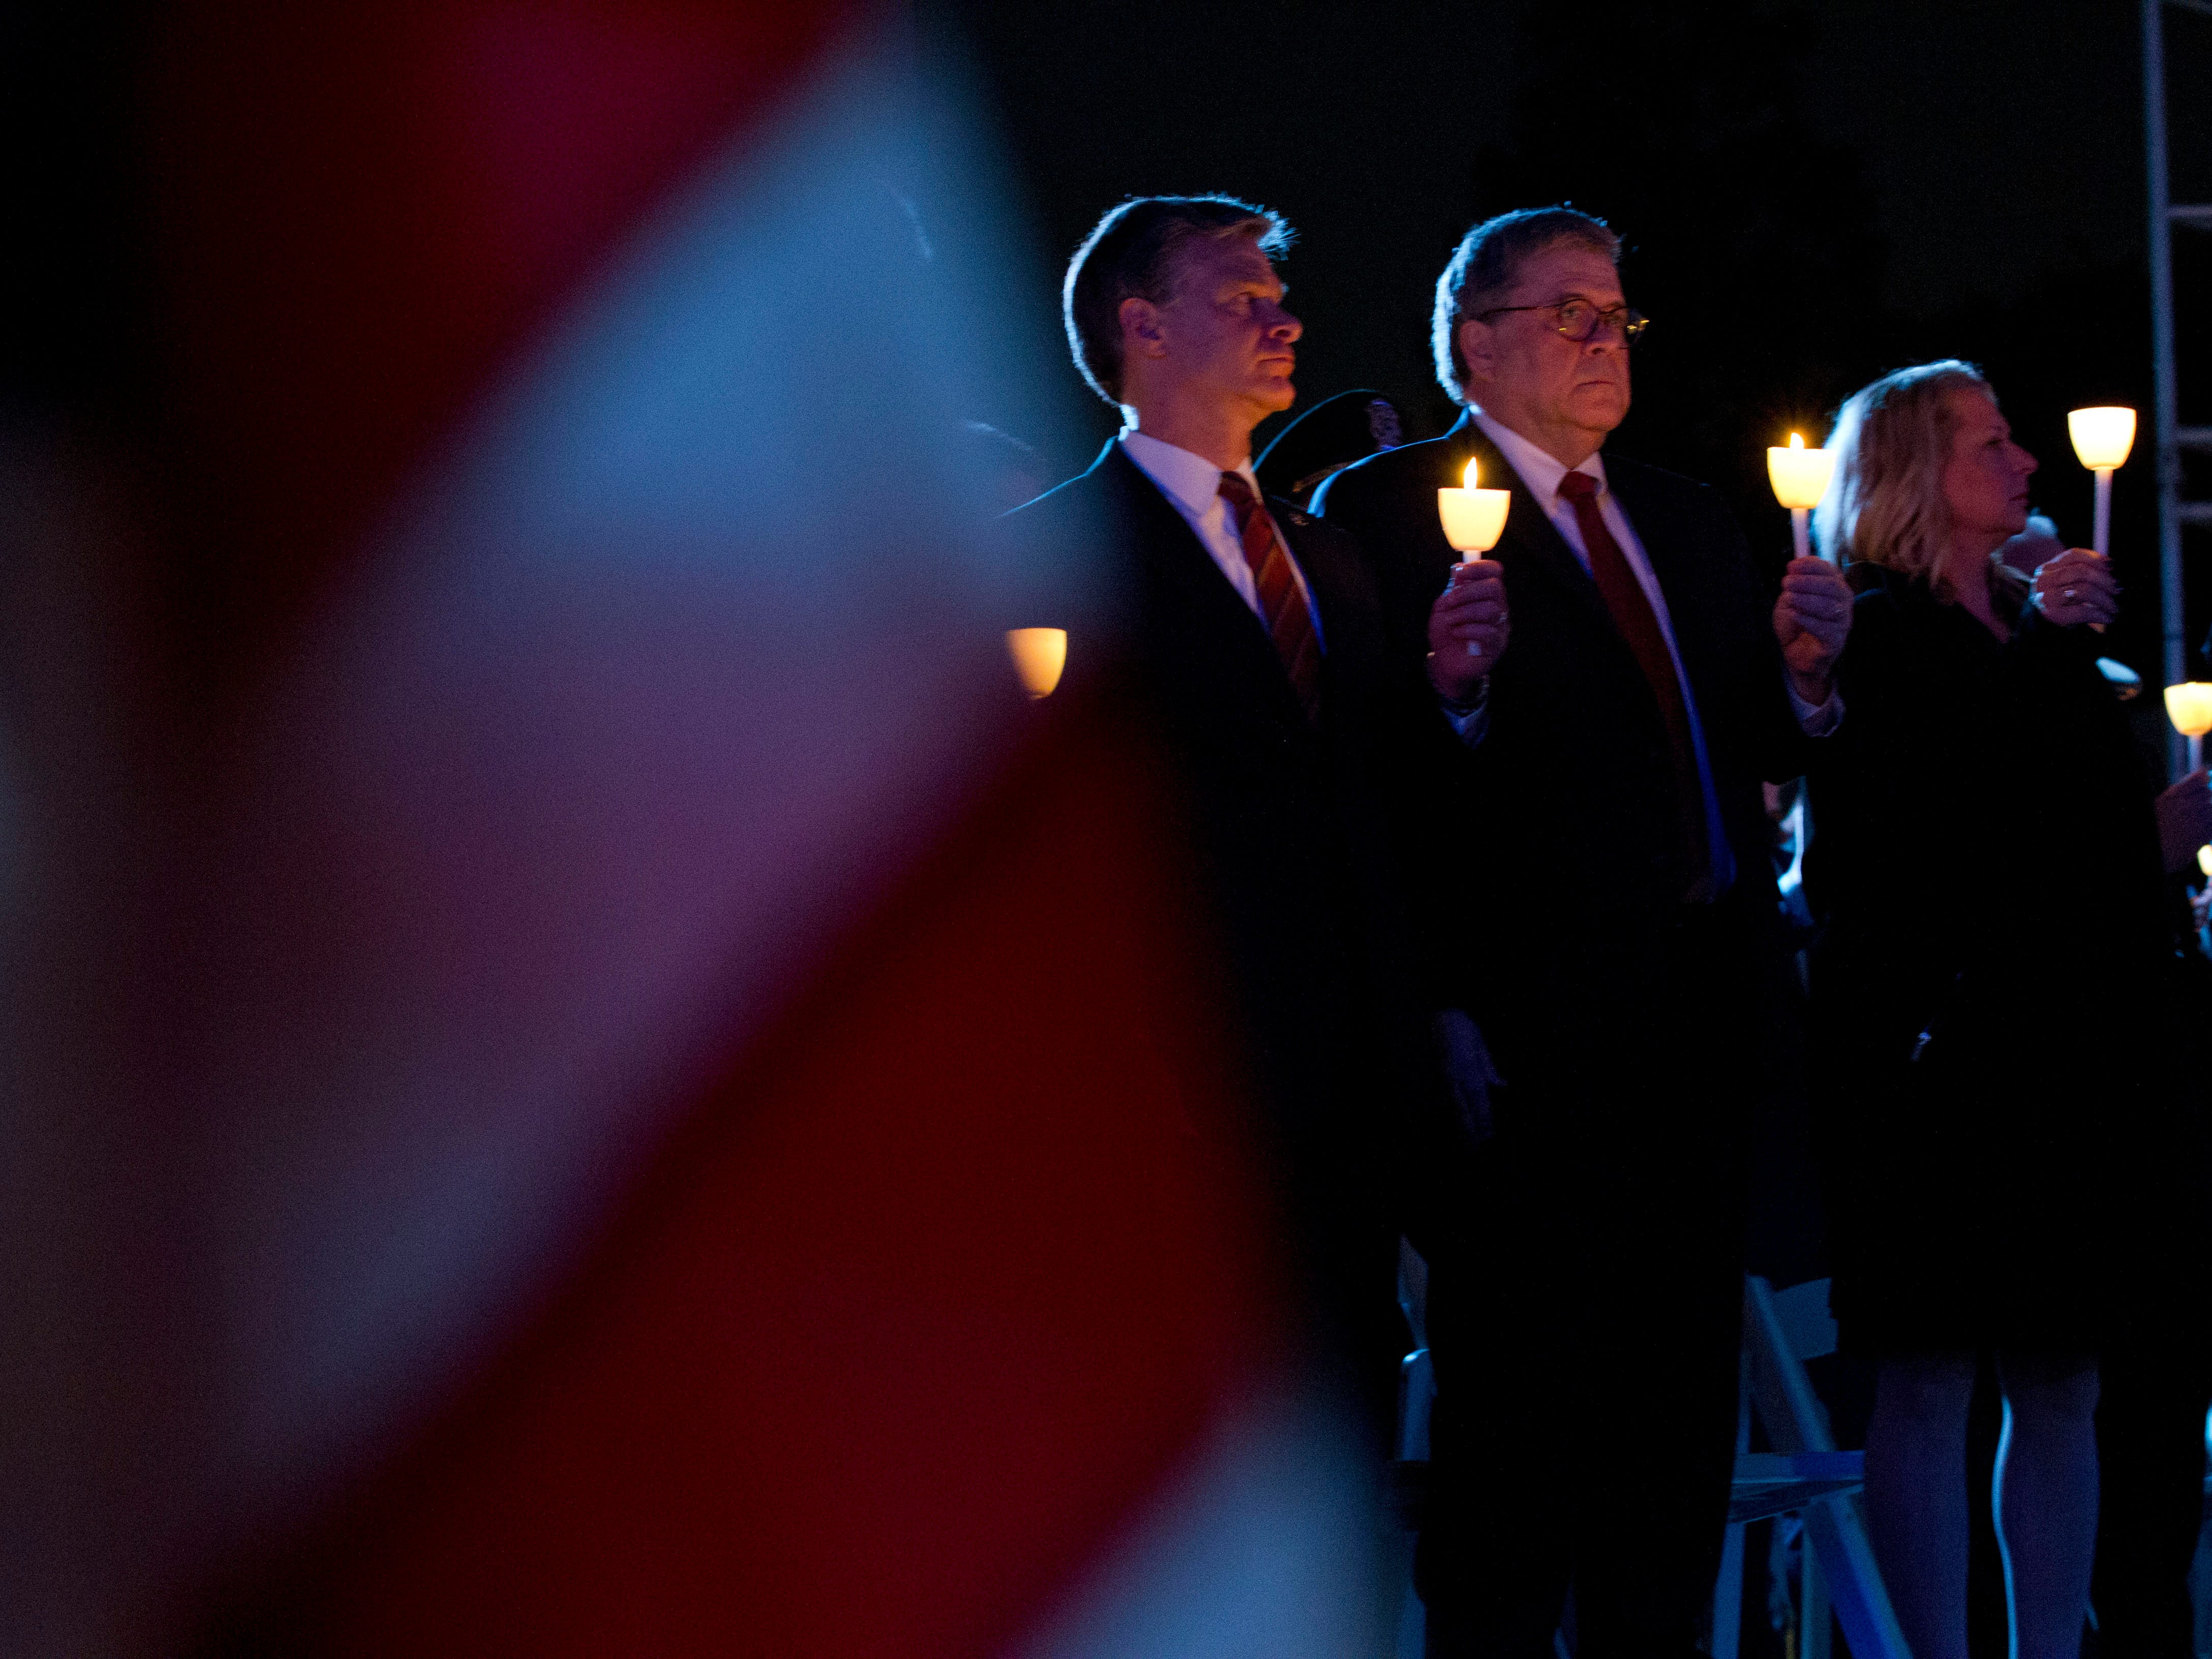 Attorney General William Barr, second from right, and FBI Director Christopher Wray, third from right, hold candles during the National Law Enforcement Officers Memorial Fund Annual Candlelight Vigil to commemorate new names added to the monument, in a ceremony at the National Mall in Washington, Monday, May 13, 2019.